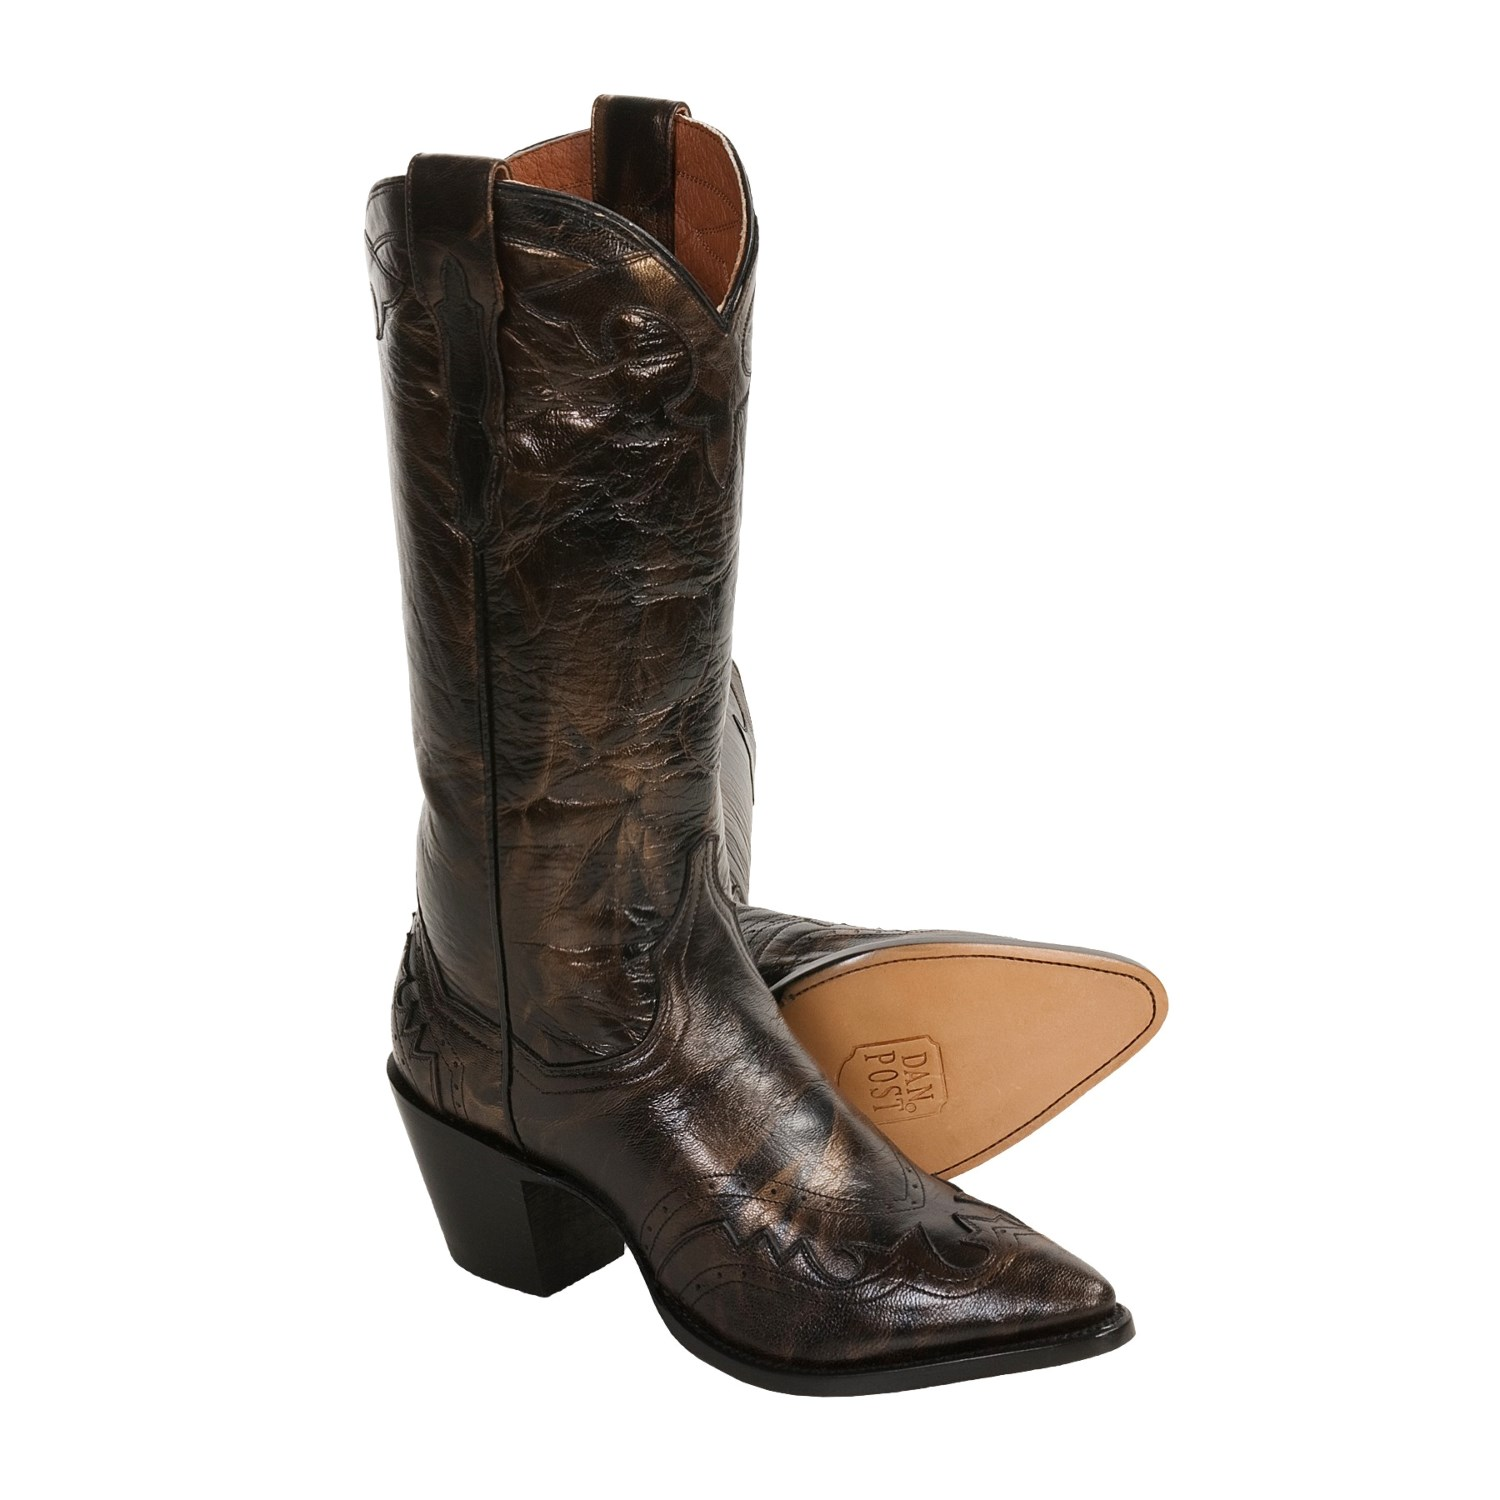 Fashion cowgirl boots for women Clothing stores